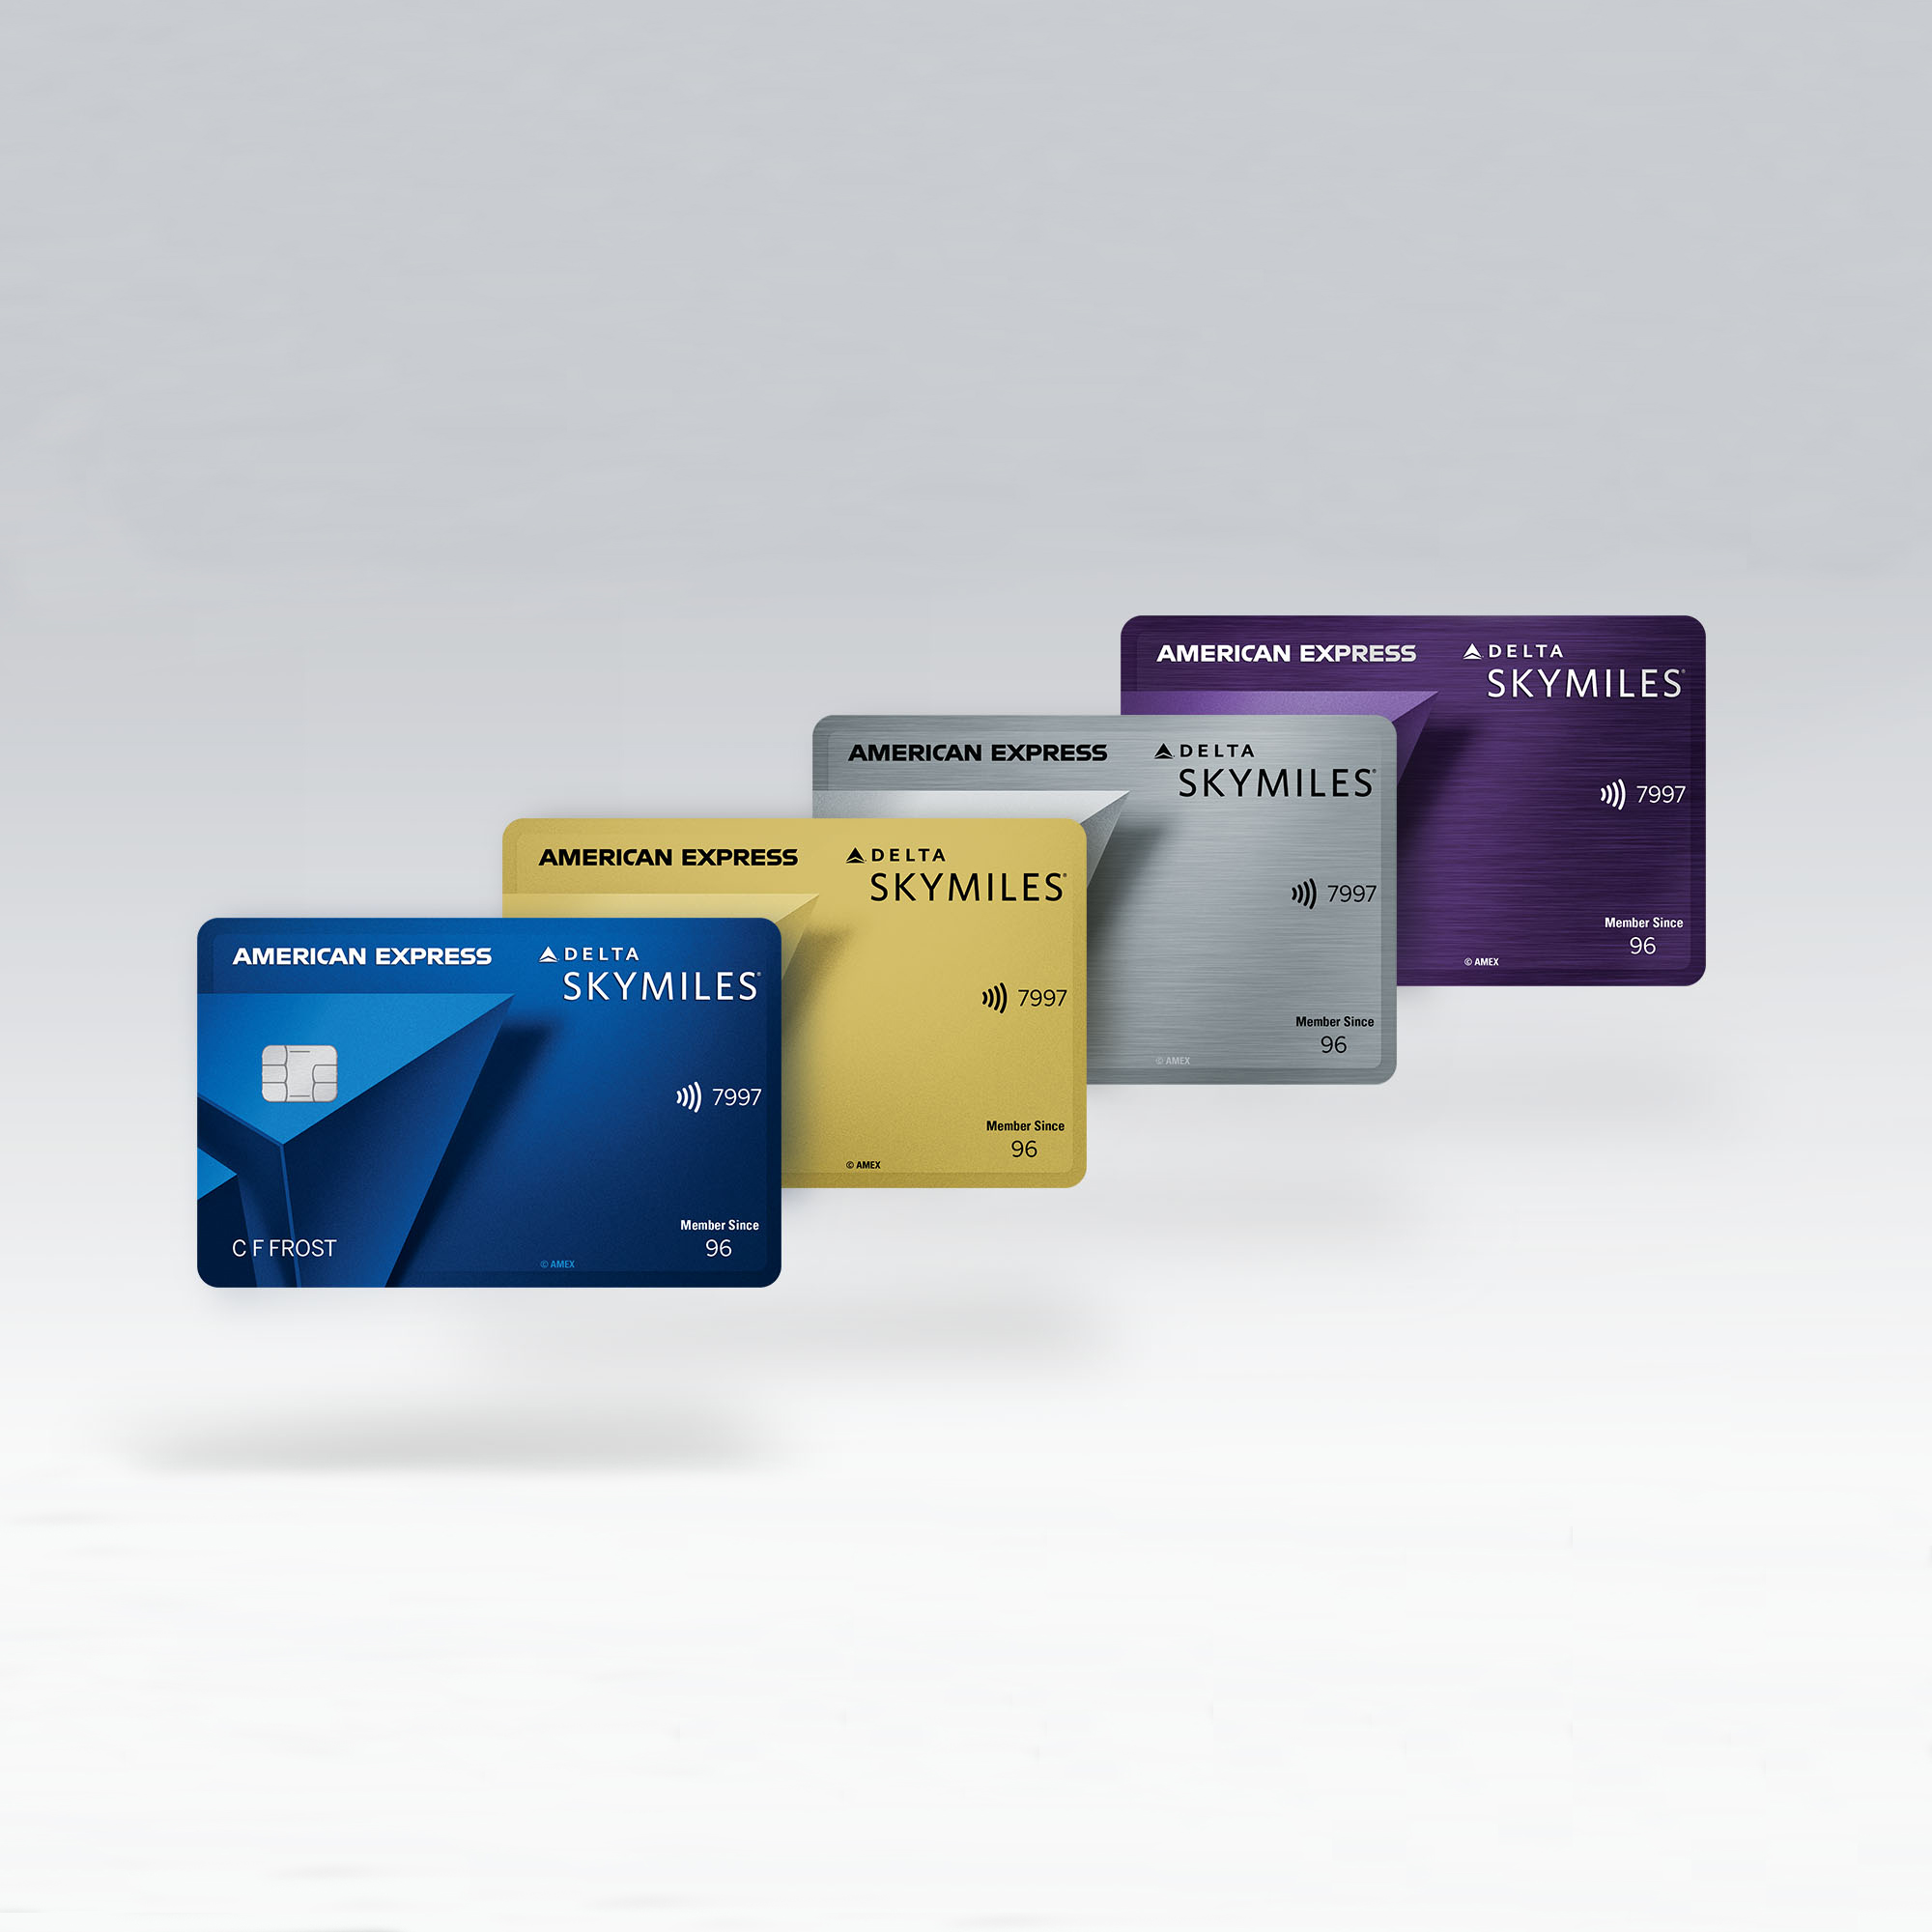 Relaunched Delta SkyMiles American Express Cards – now with new